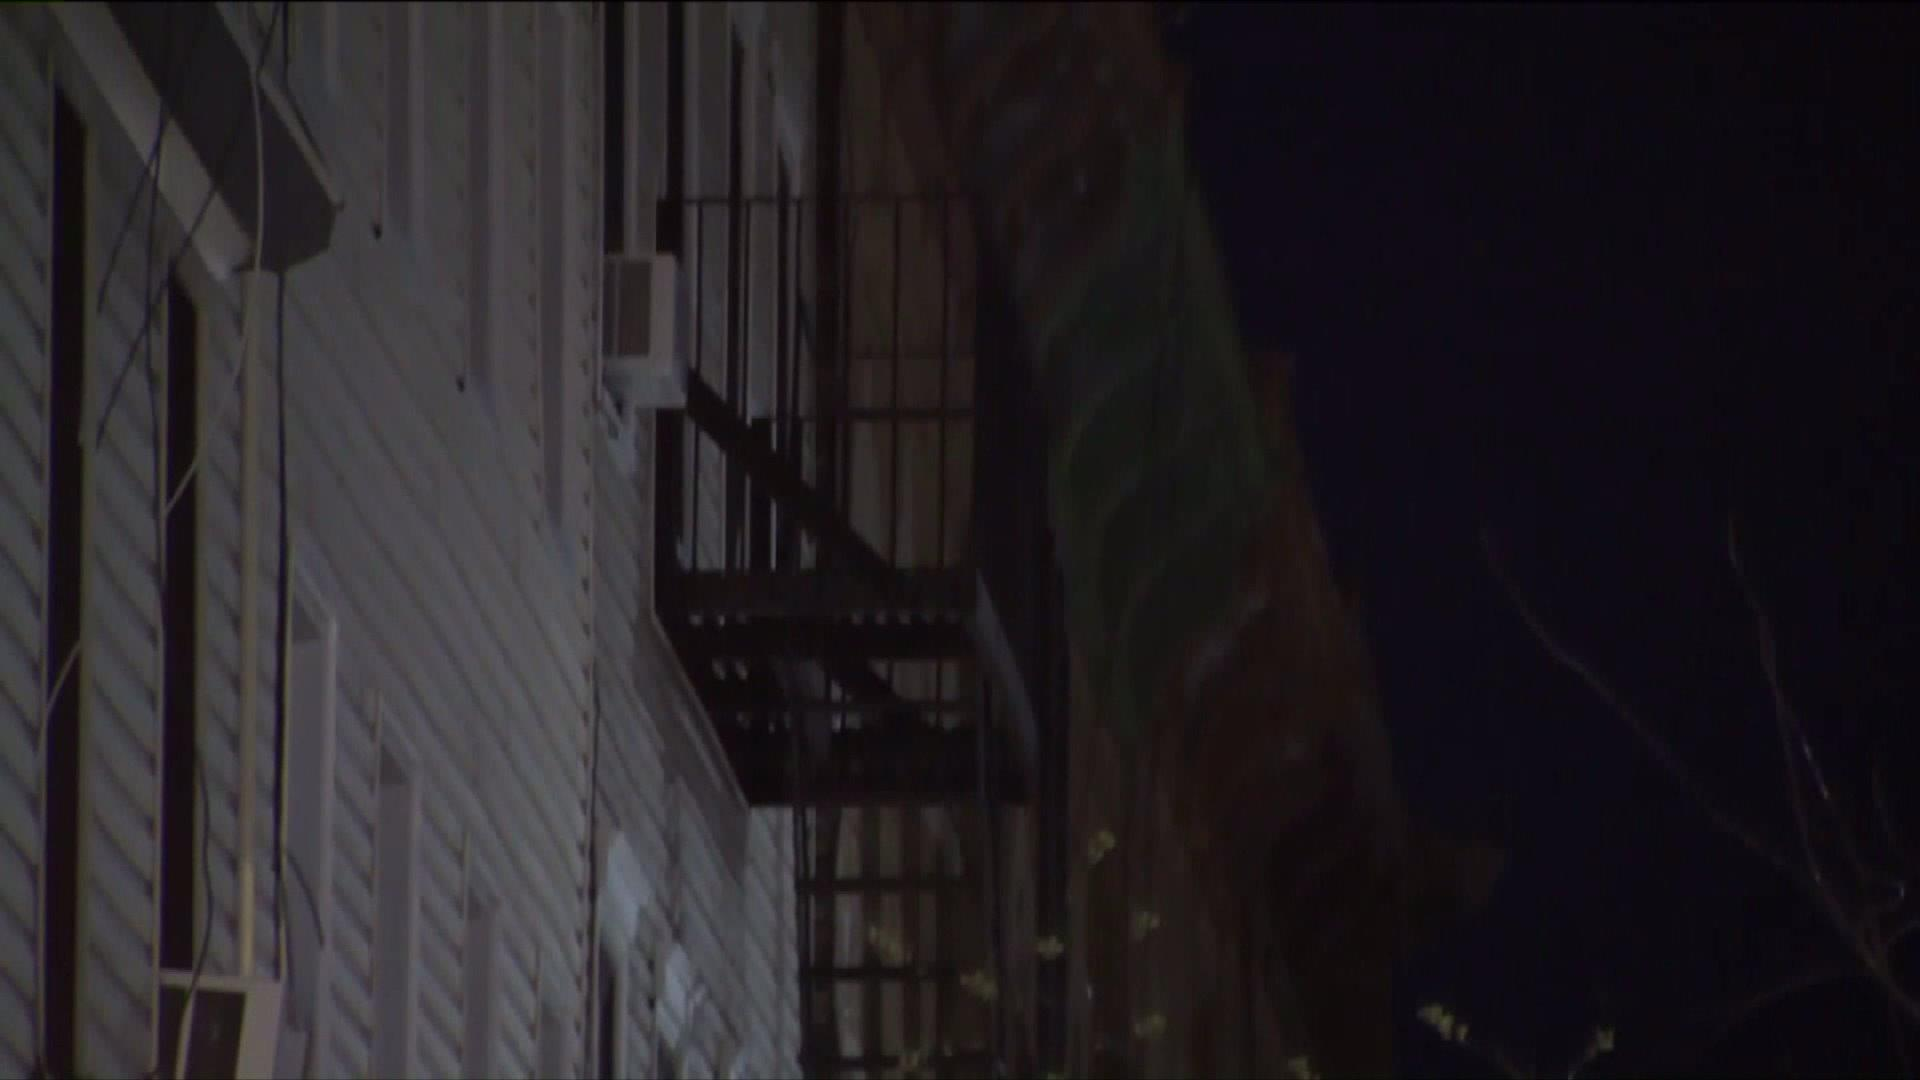 Attempted Rape Suspect Climbed Into Woman's Bedroom Through Fire Escape: NYPD